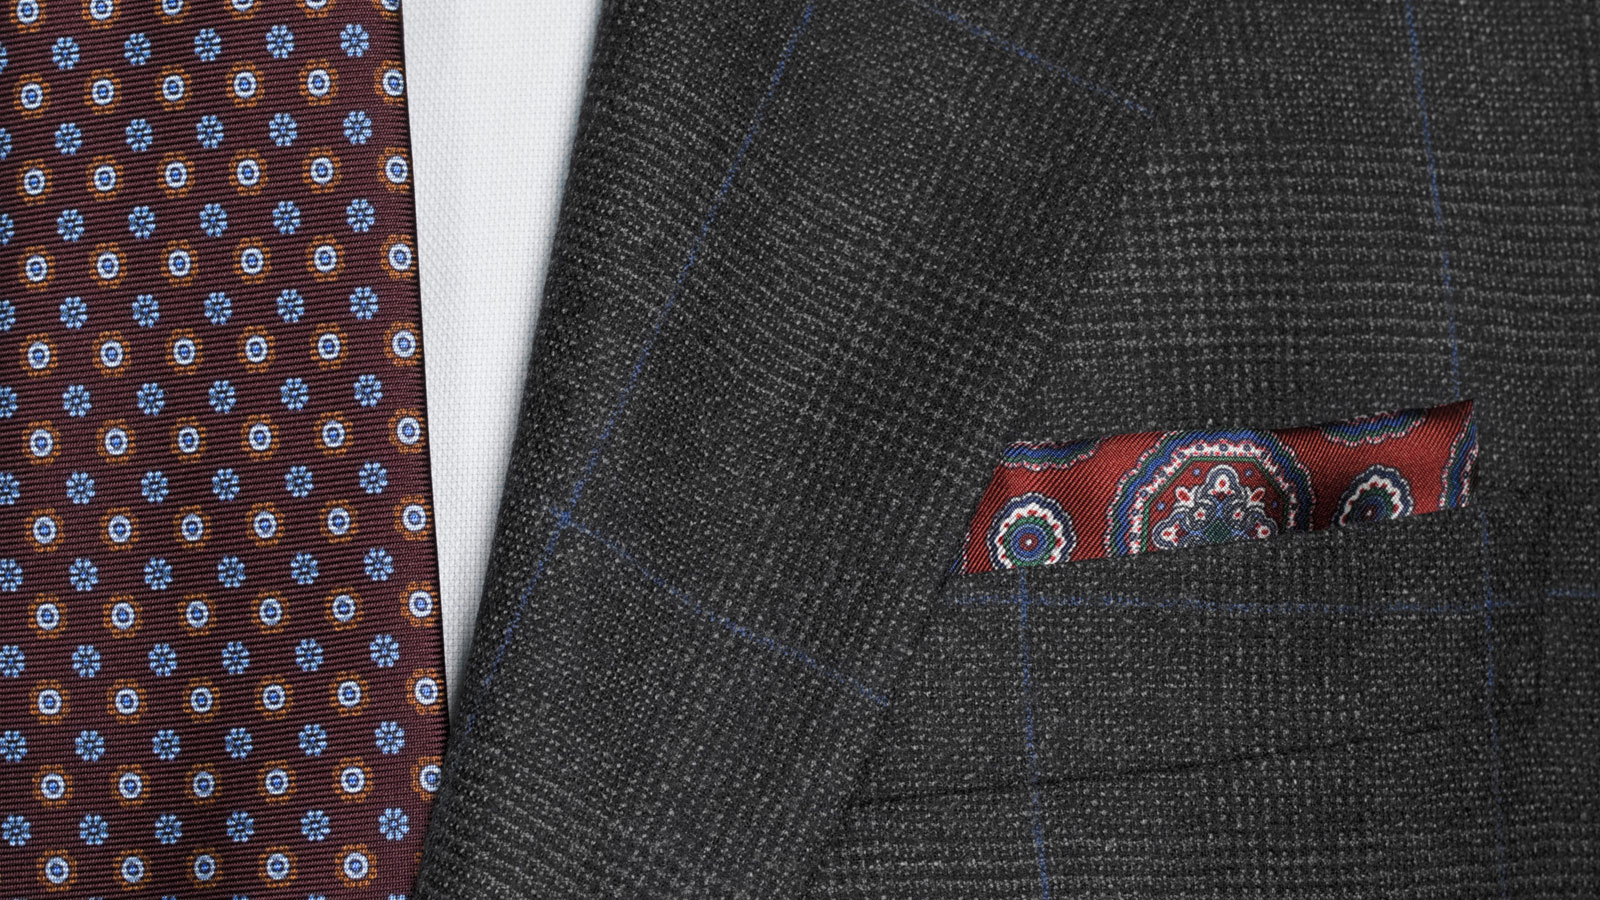 Charcoal Plaid With Navy Overcheck Suit - slider image 1